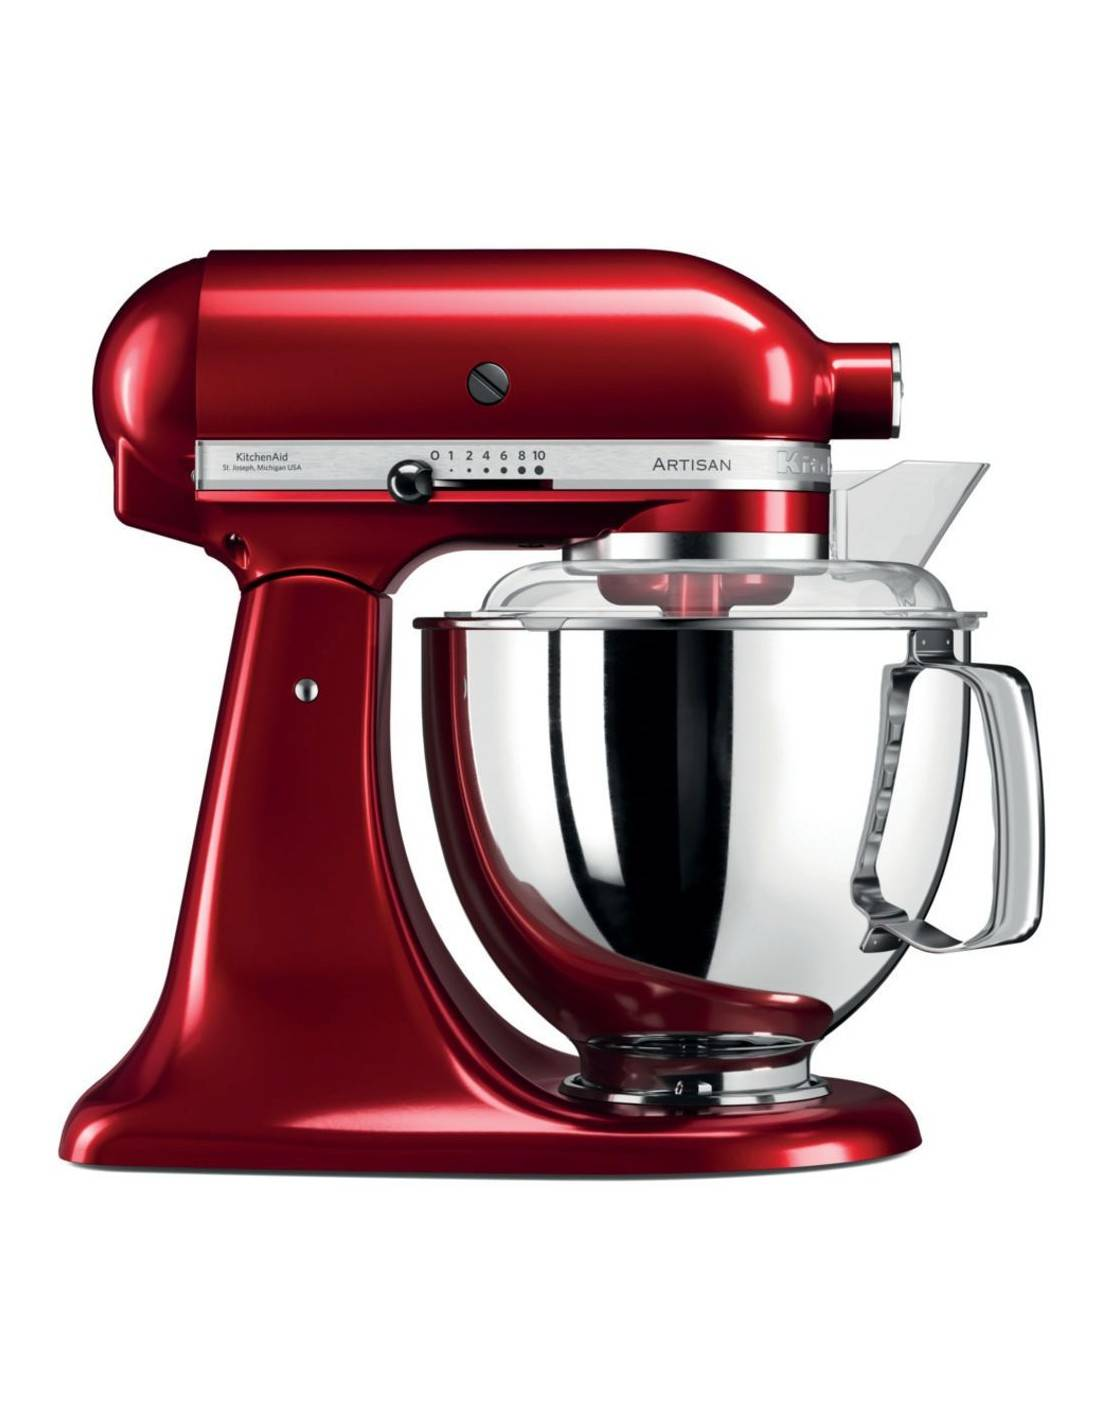 KitchenAid Artisan 4,8L Candy Apple | MIMOCOOK - Online Store